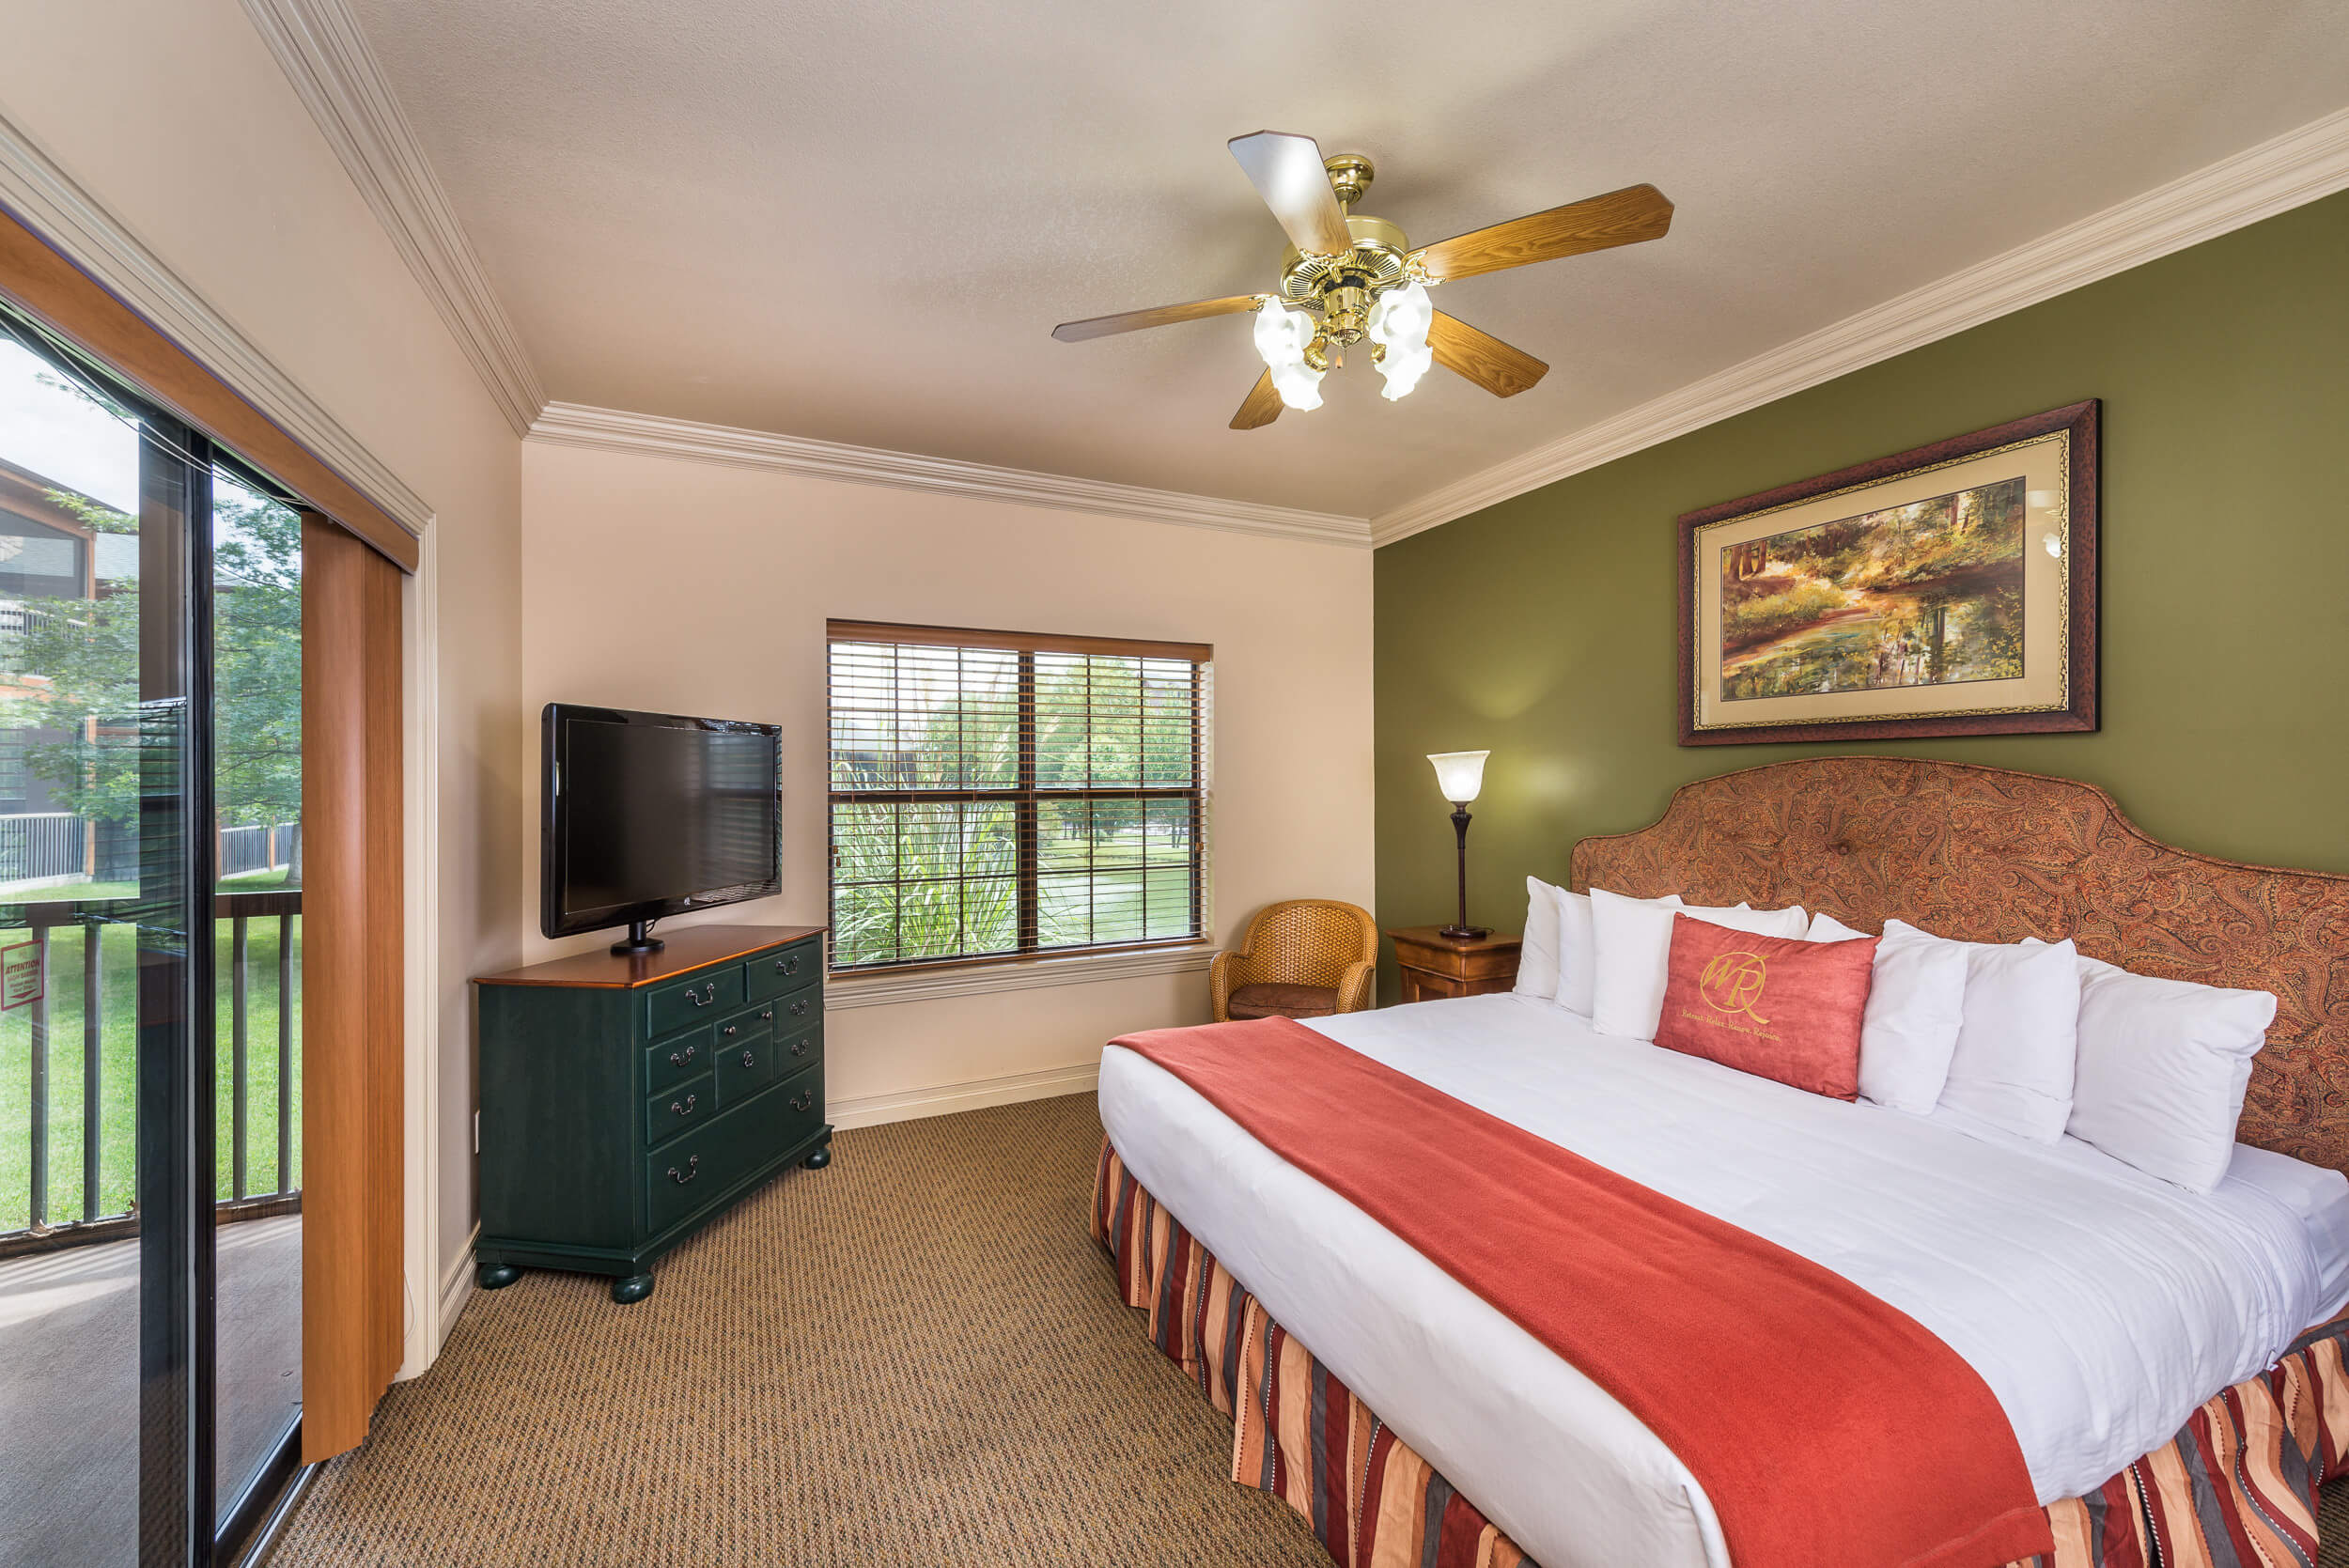 King Bed in Two-Bedroom Villa at our Branson Villas | Westgate Branson Woods Resort